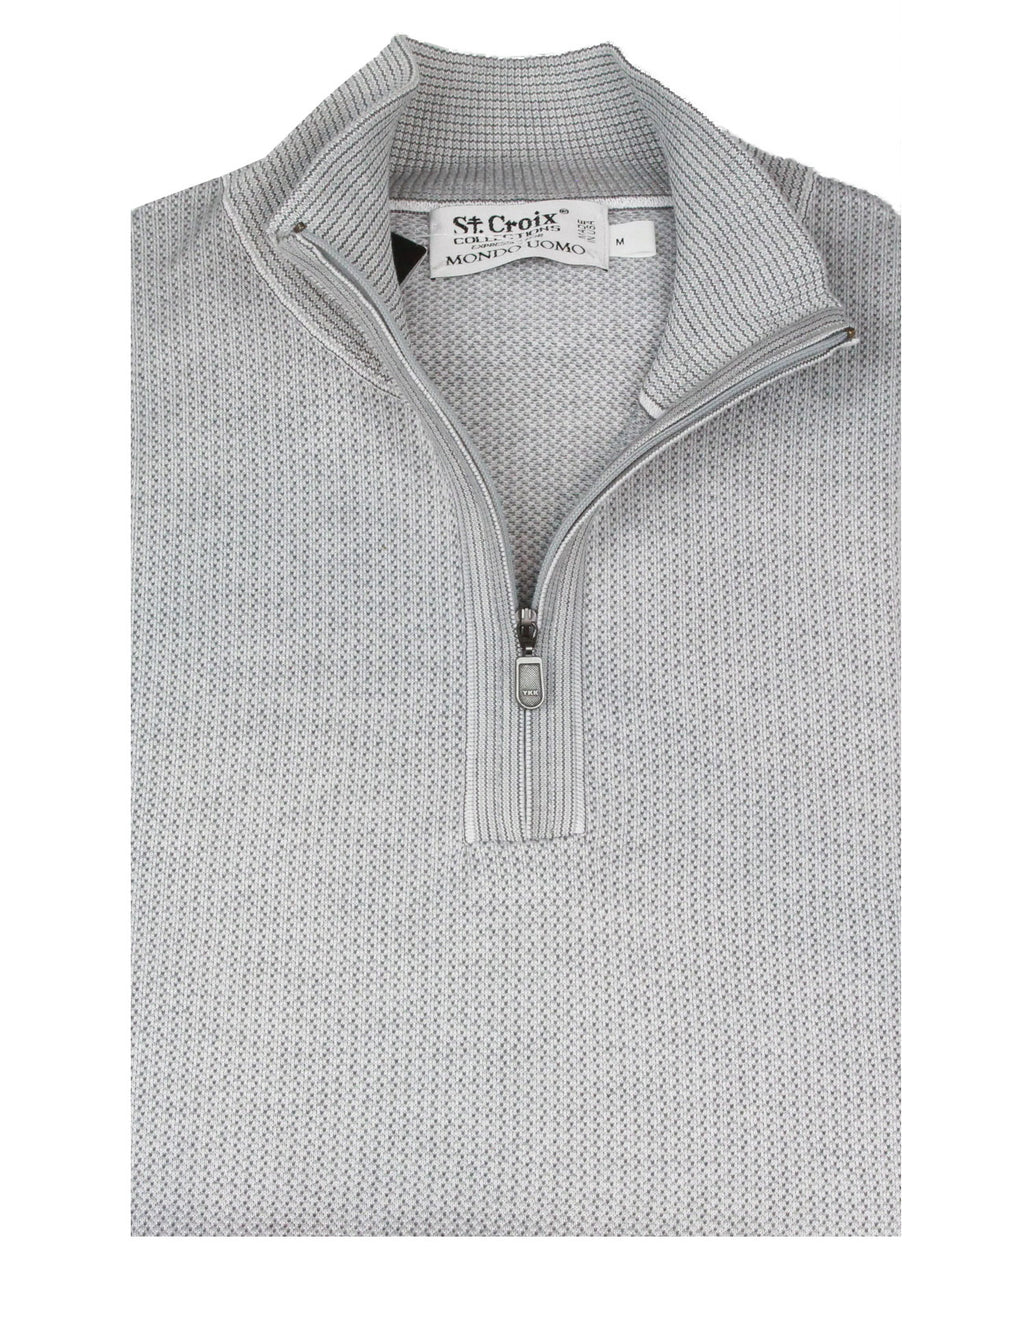 St Croix Sweater Zip Mock White